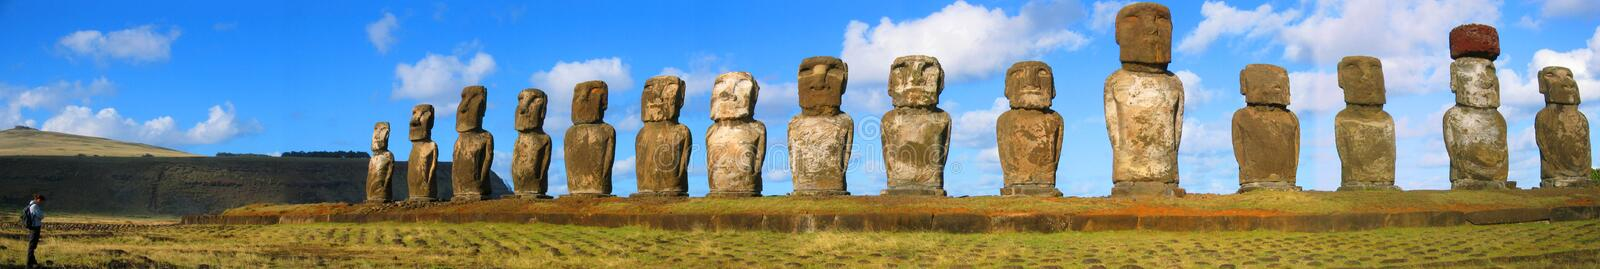 Sentinels. Ancient Moai on Easter Island